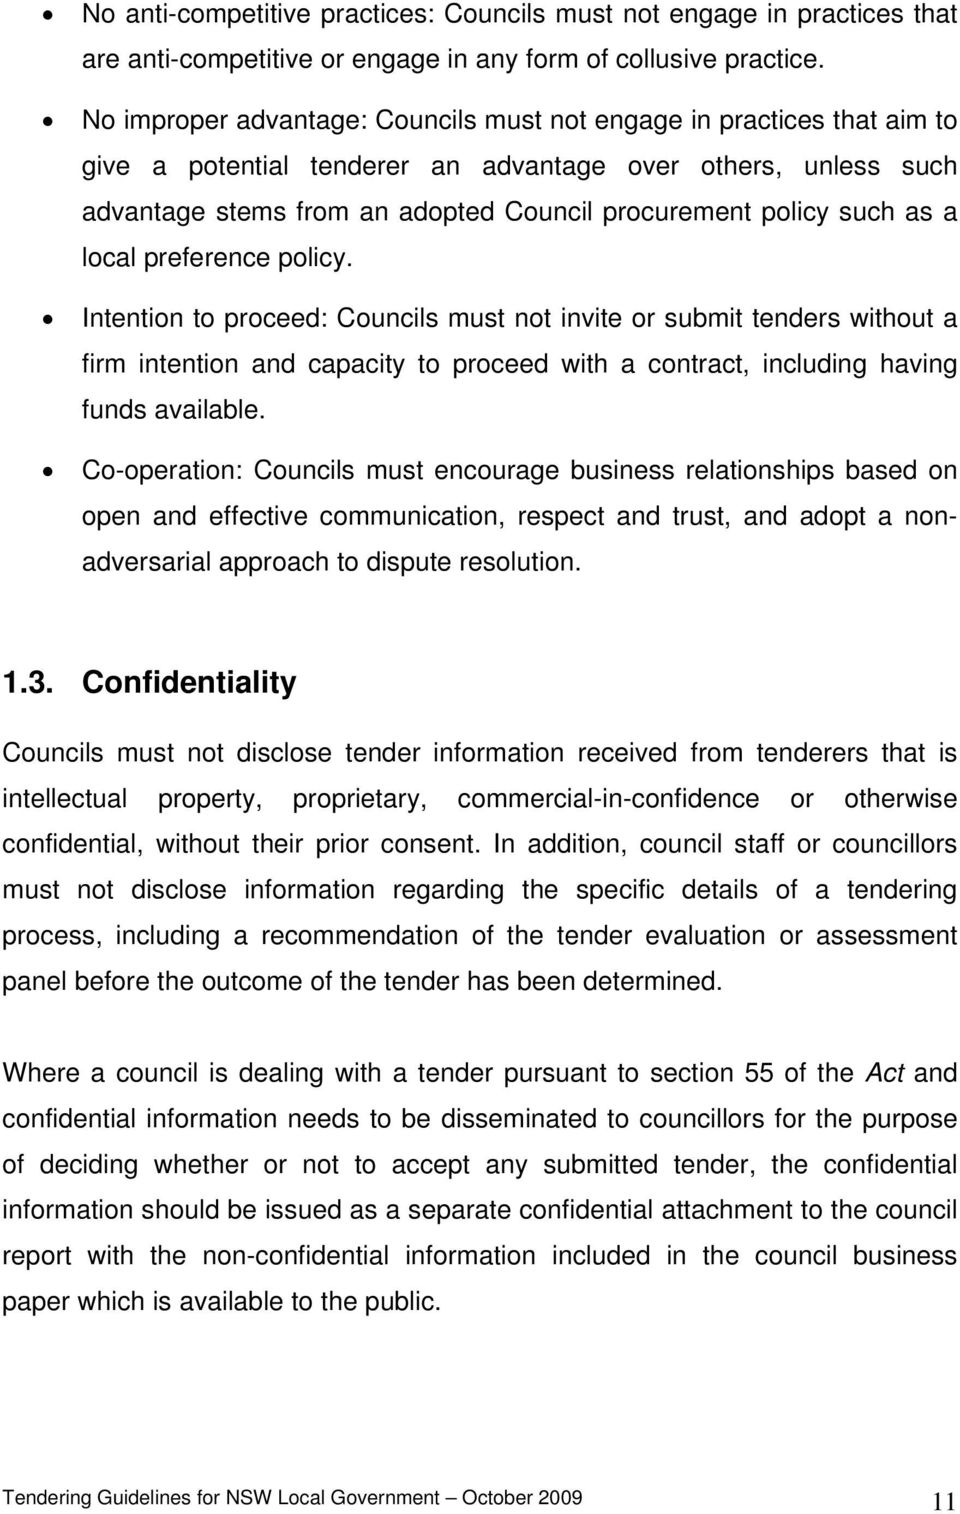 such as a local preference policy. Intention to proceed: Councils must not invite or submit tenders without a firm intention and capacity to proceed with a contract, including having funds available.